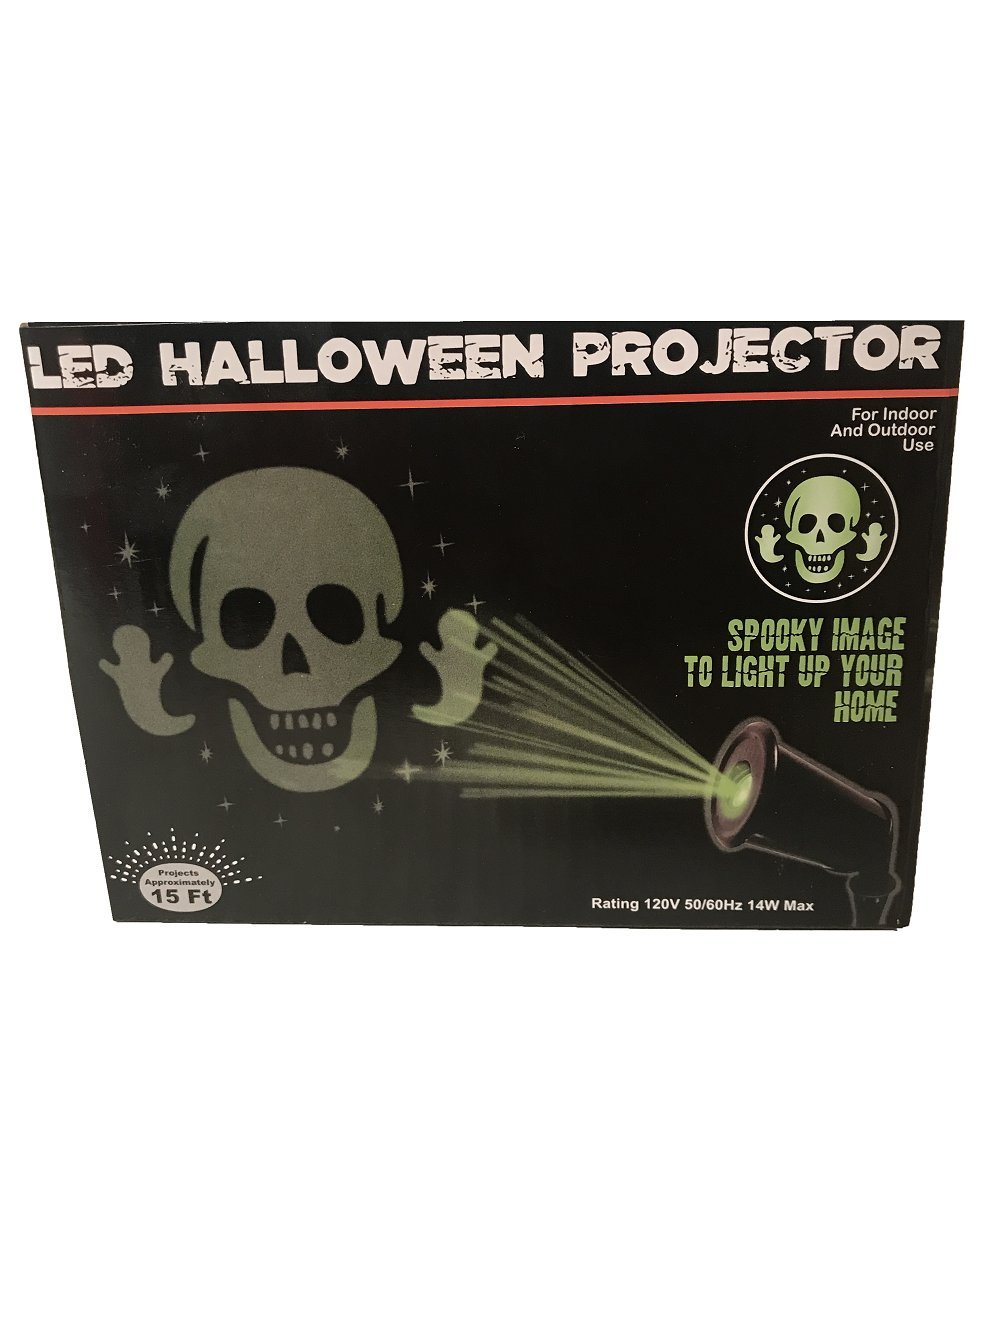 LED Halloween Projector! Spooky Image to Light up Your Home! for Indoor and Outdoor Use! Projects Approximately 15 Feet! Spooky Skeleton Design!